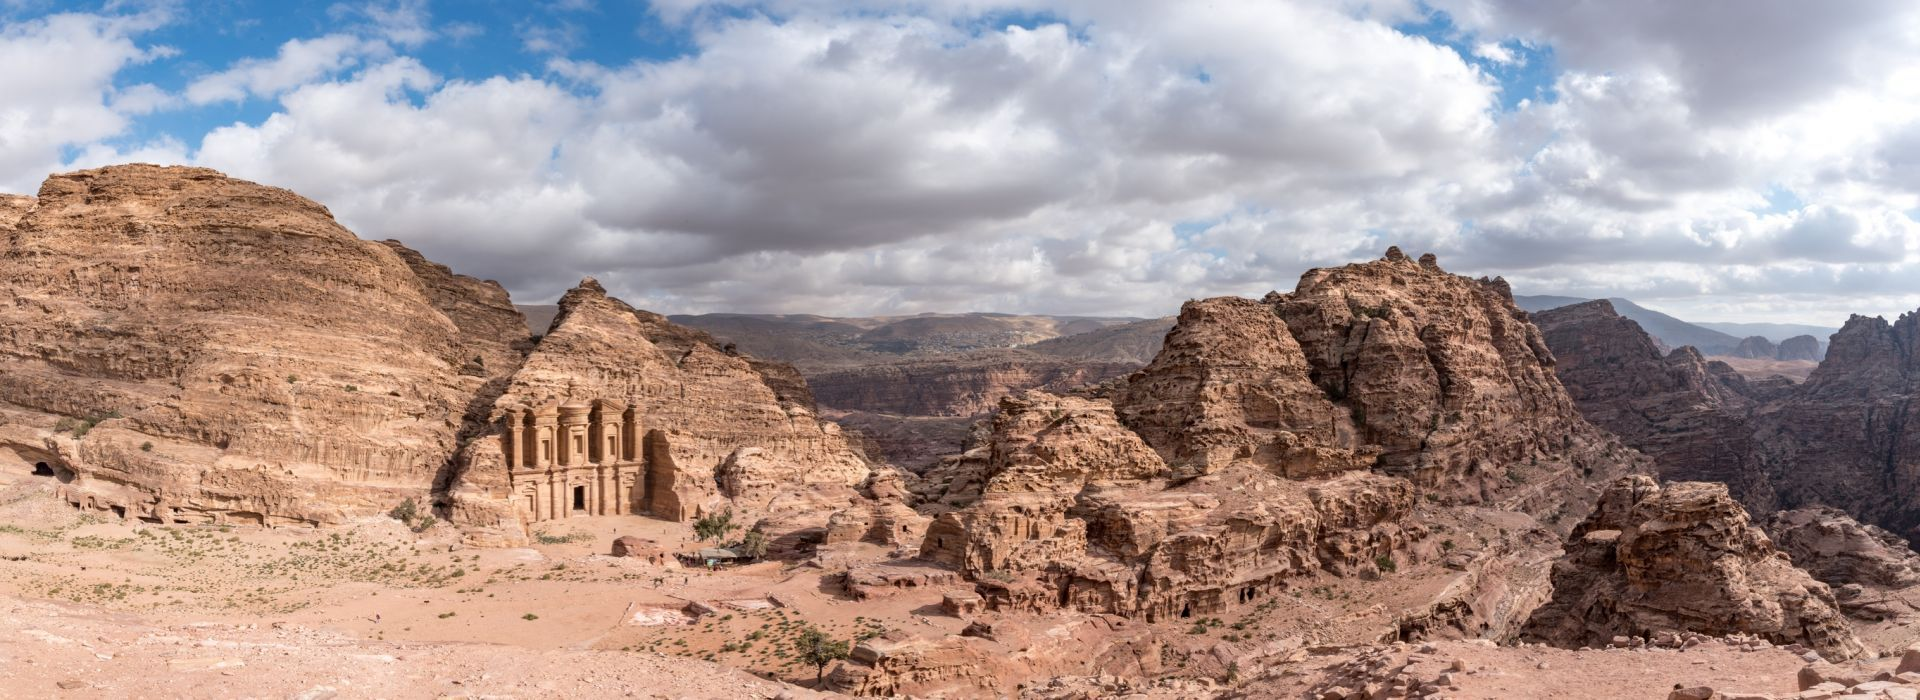 Trekking Tours in Jordan